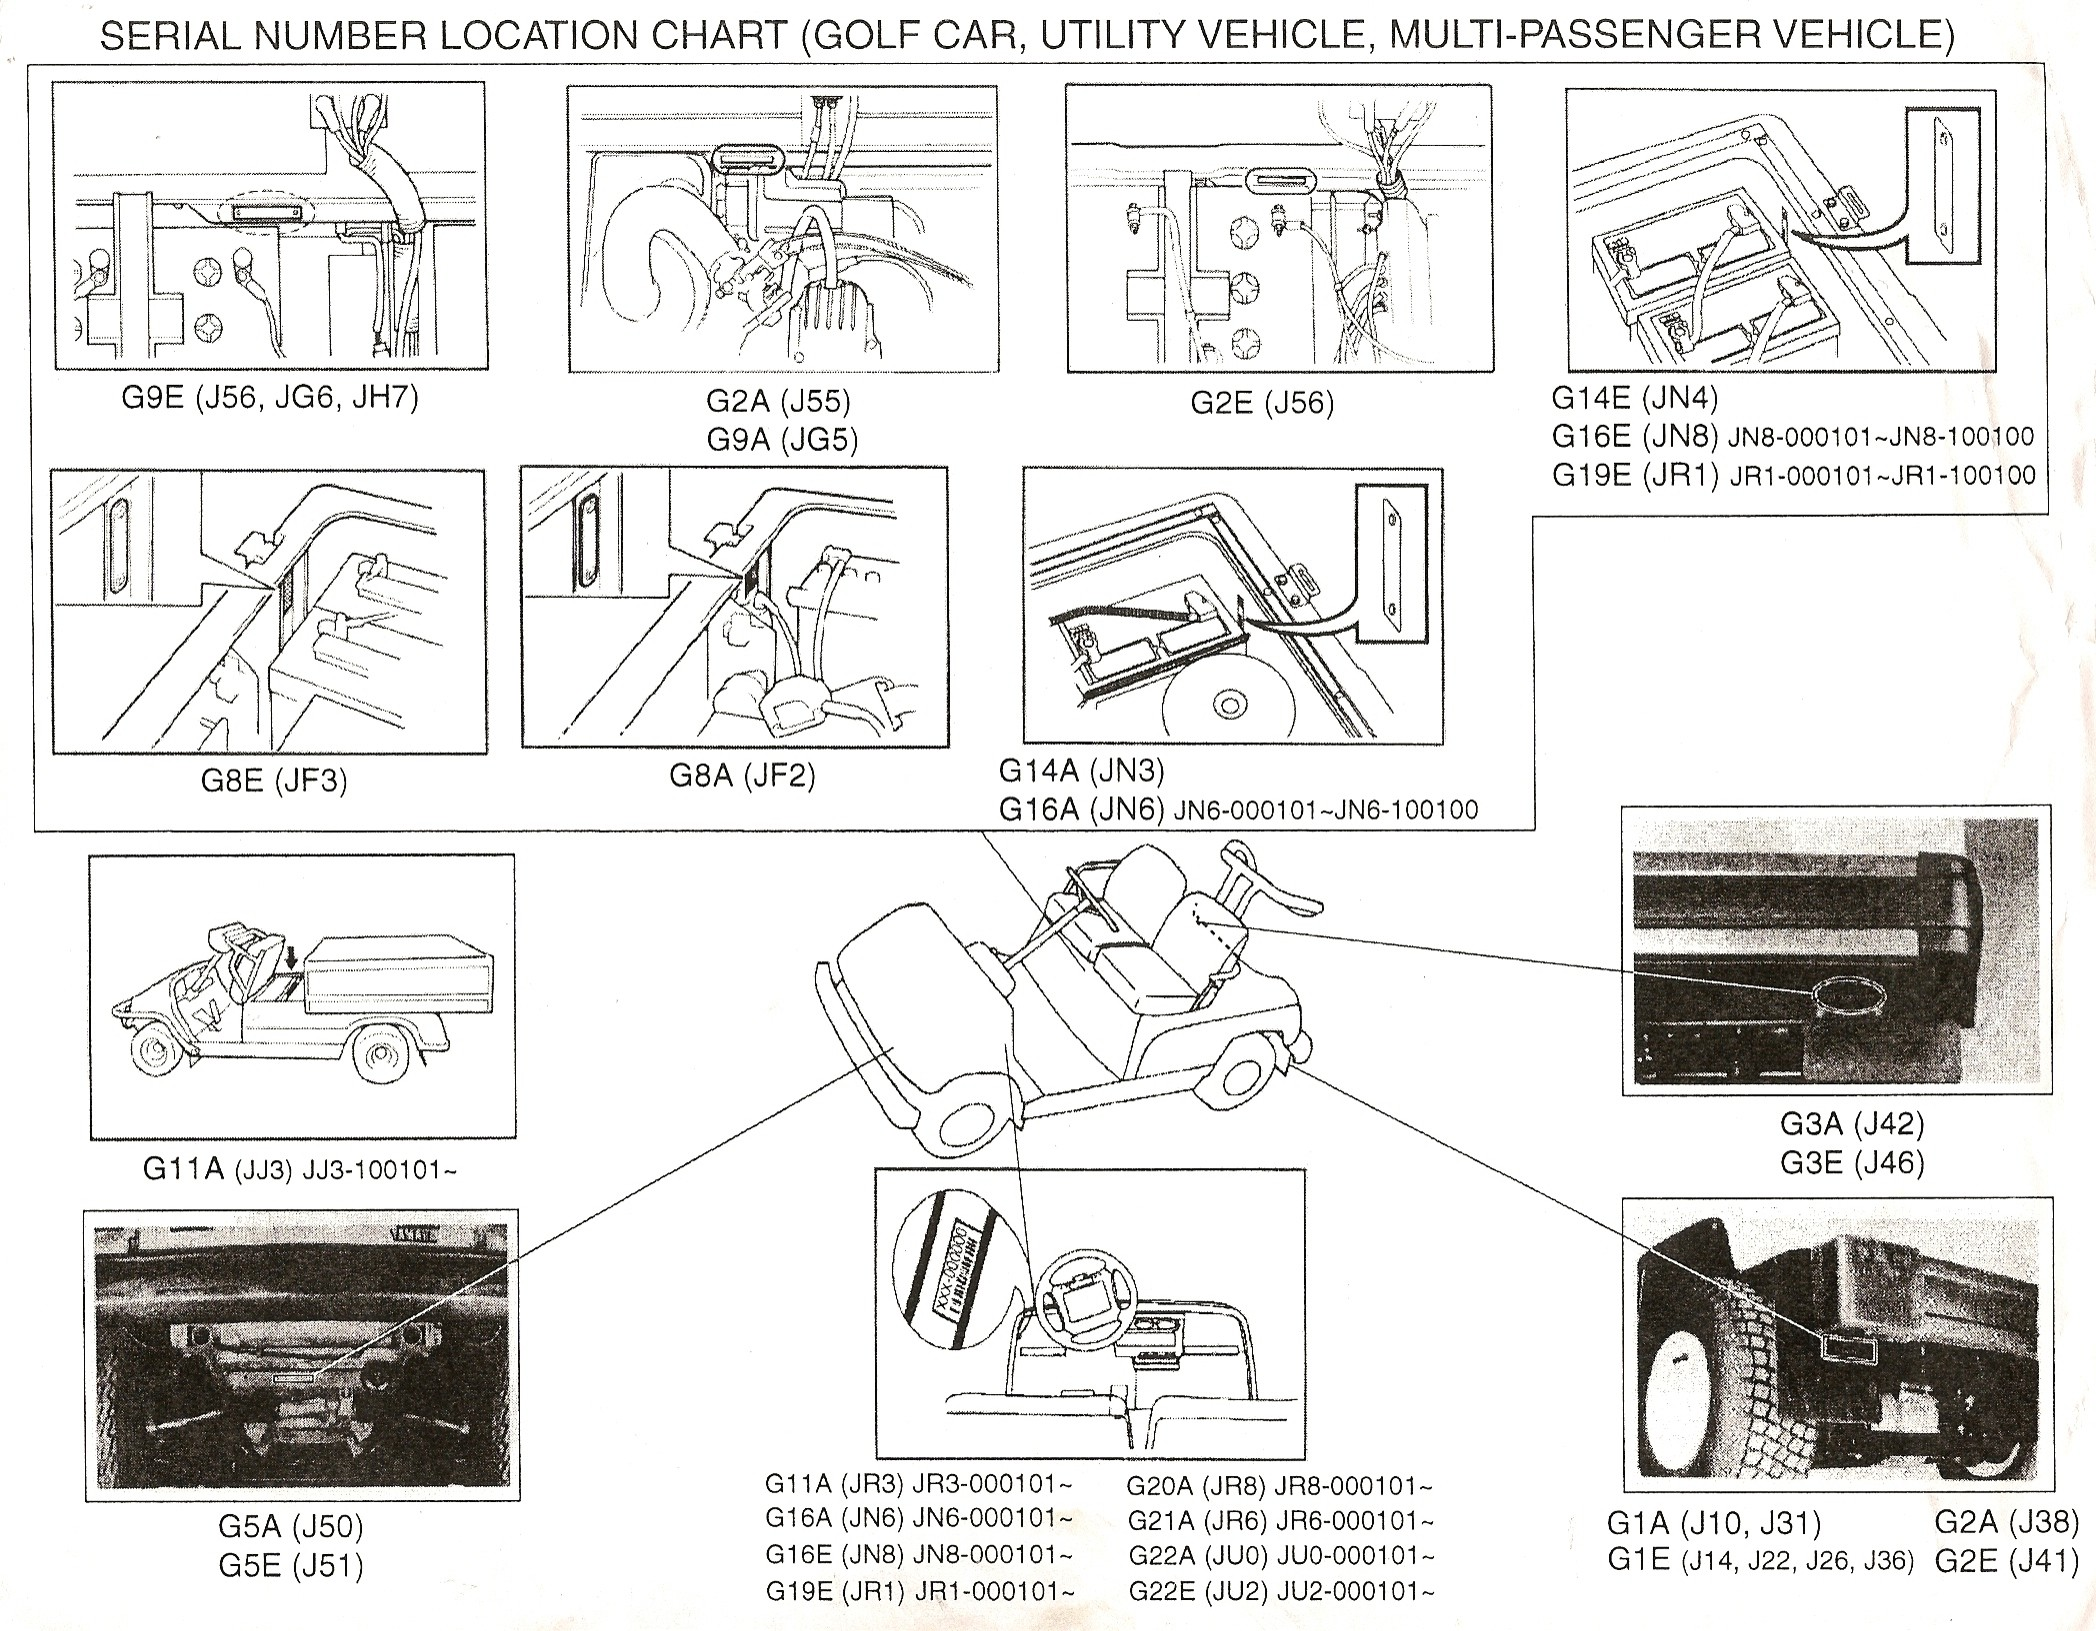 wiring diagram for ez go gas golf cart schematics and wiring where can i dowload a wiring diagram for ez go 2002 gas fixya